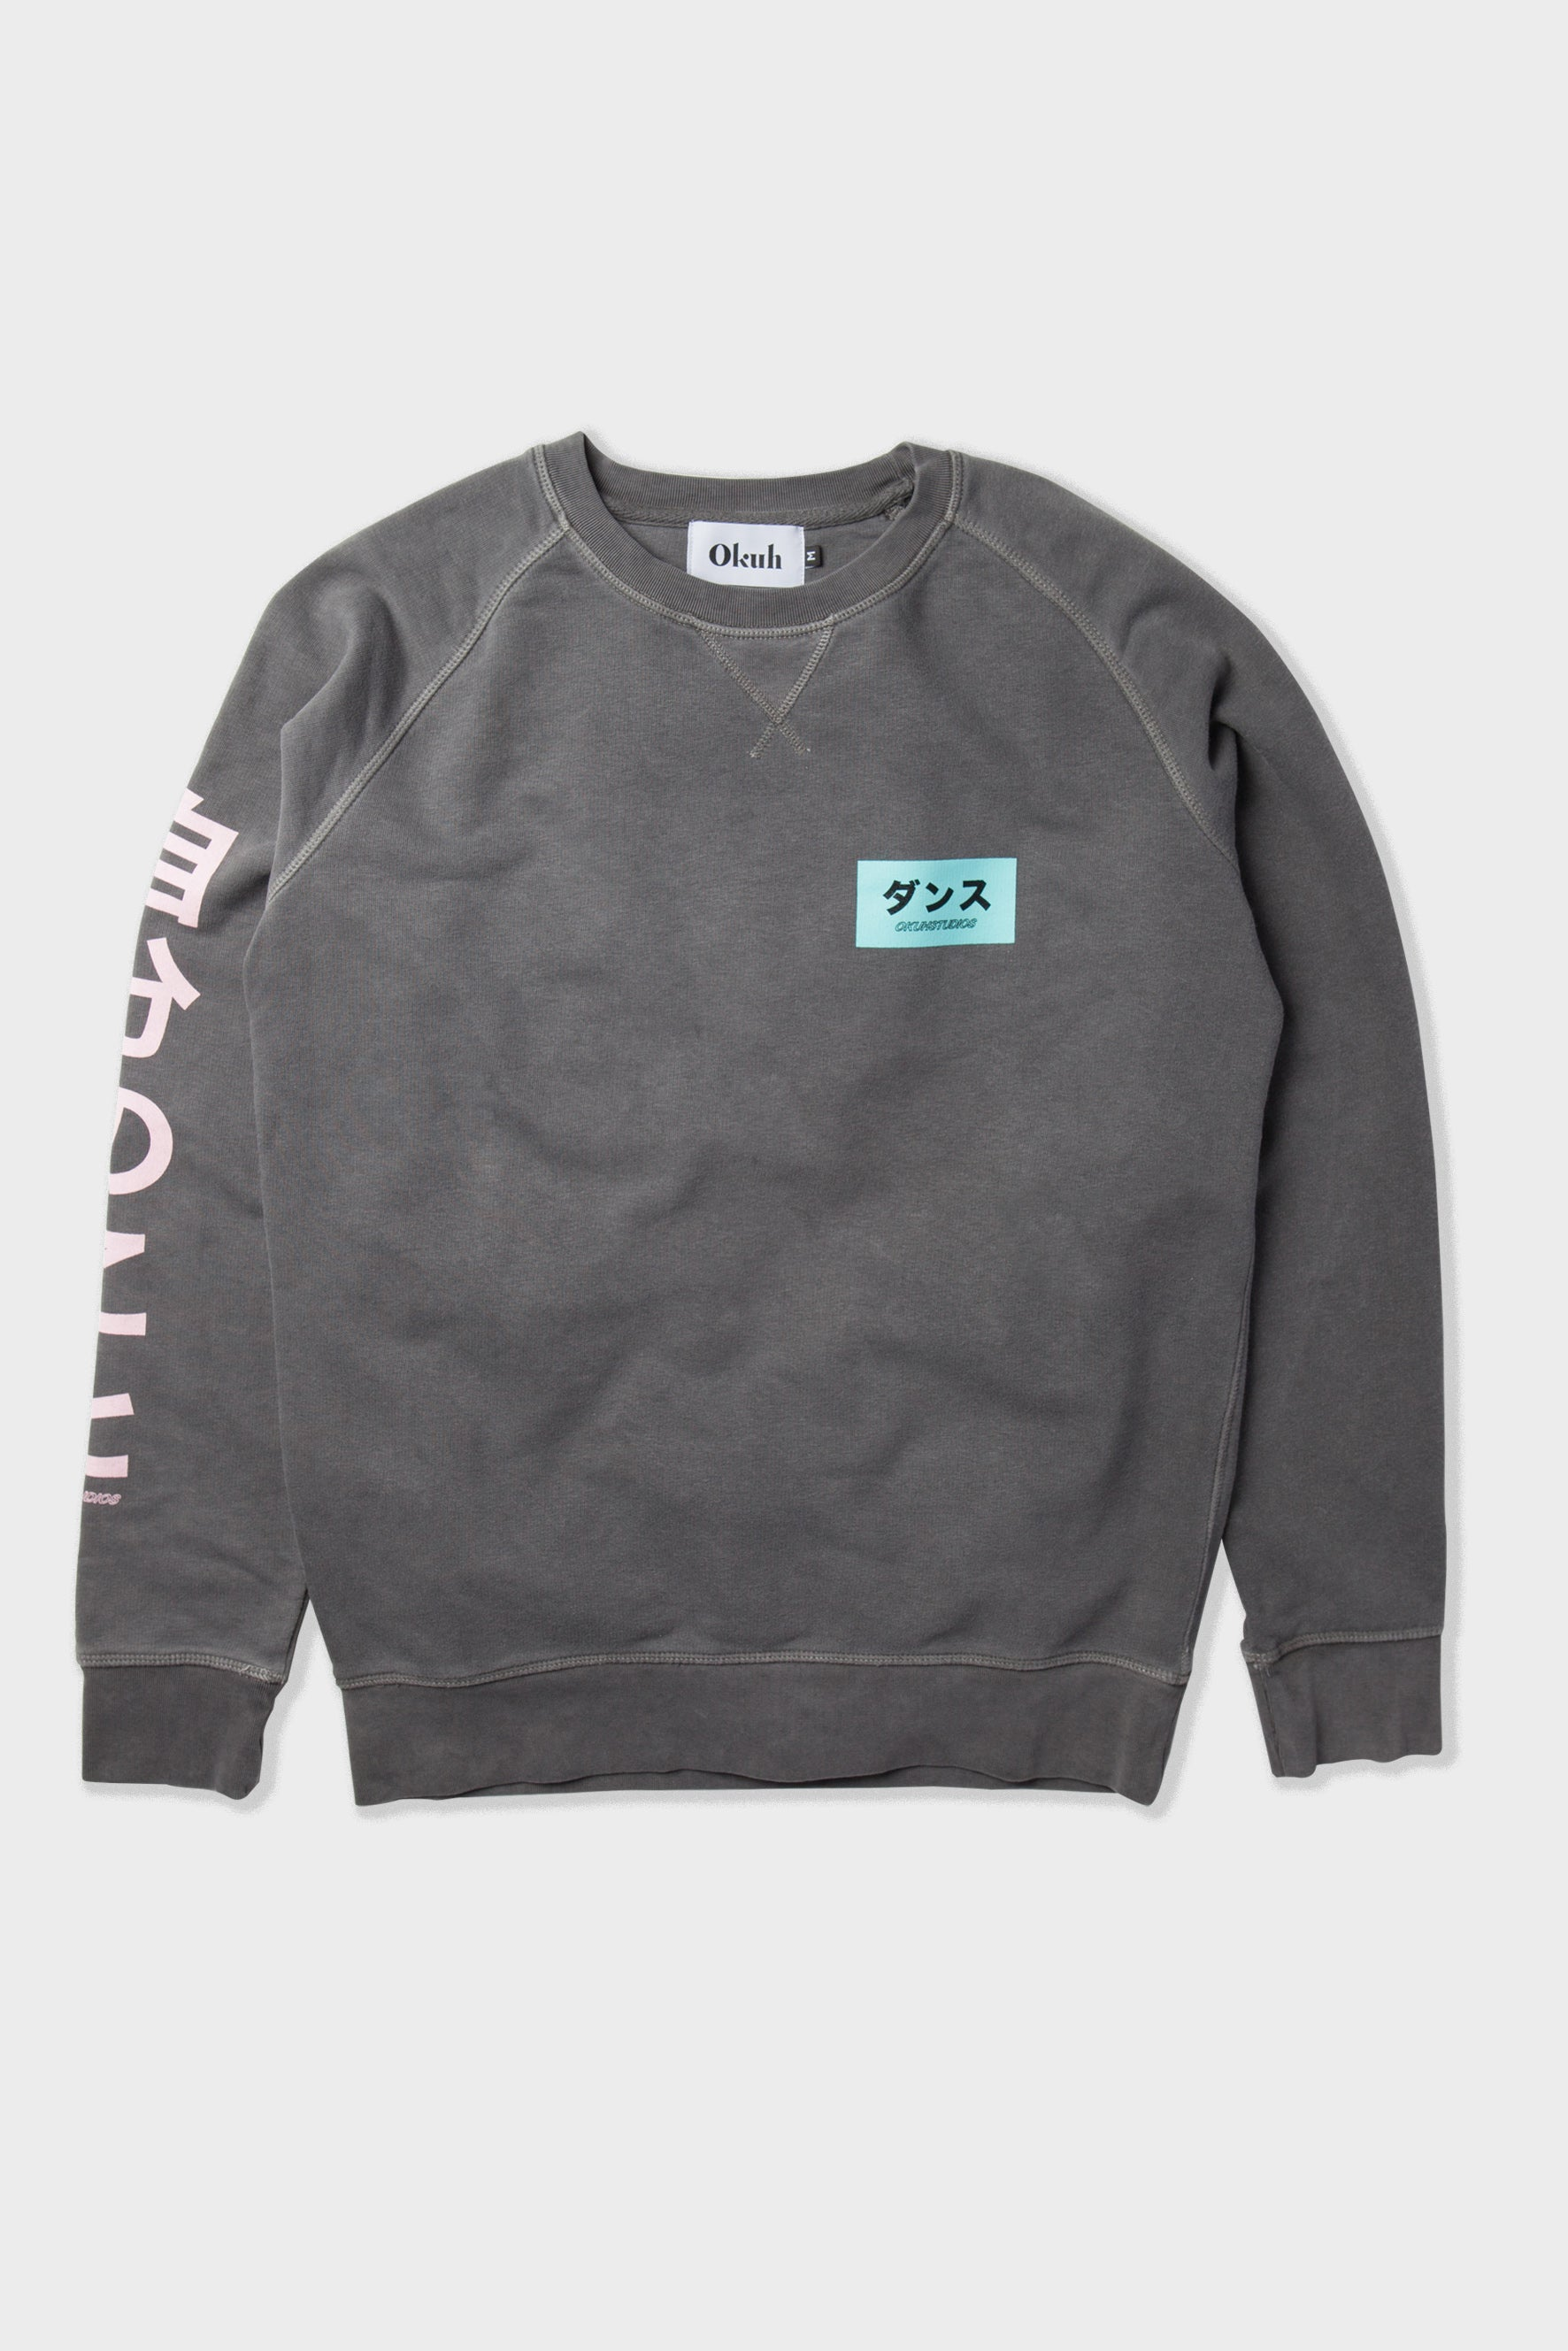 Back Up Disk - Washed Black Embroidered Sweatshirt